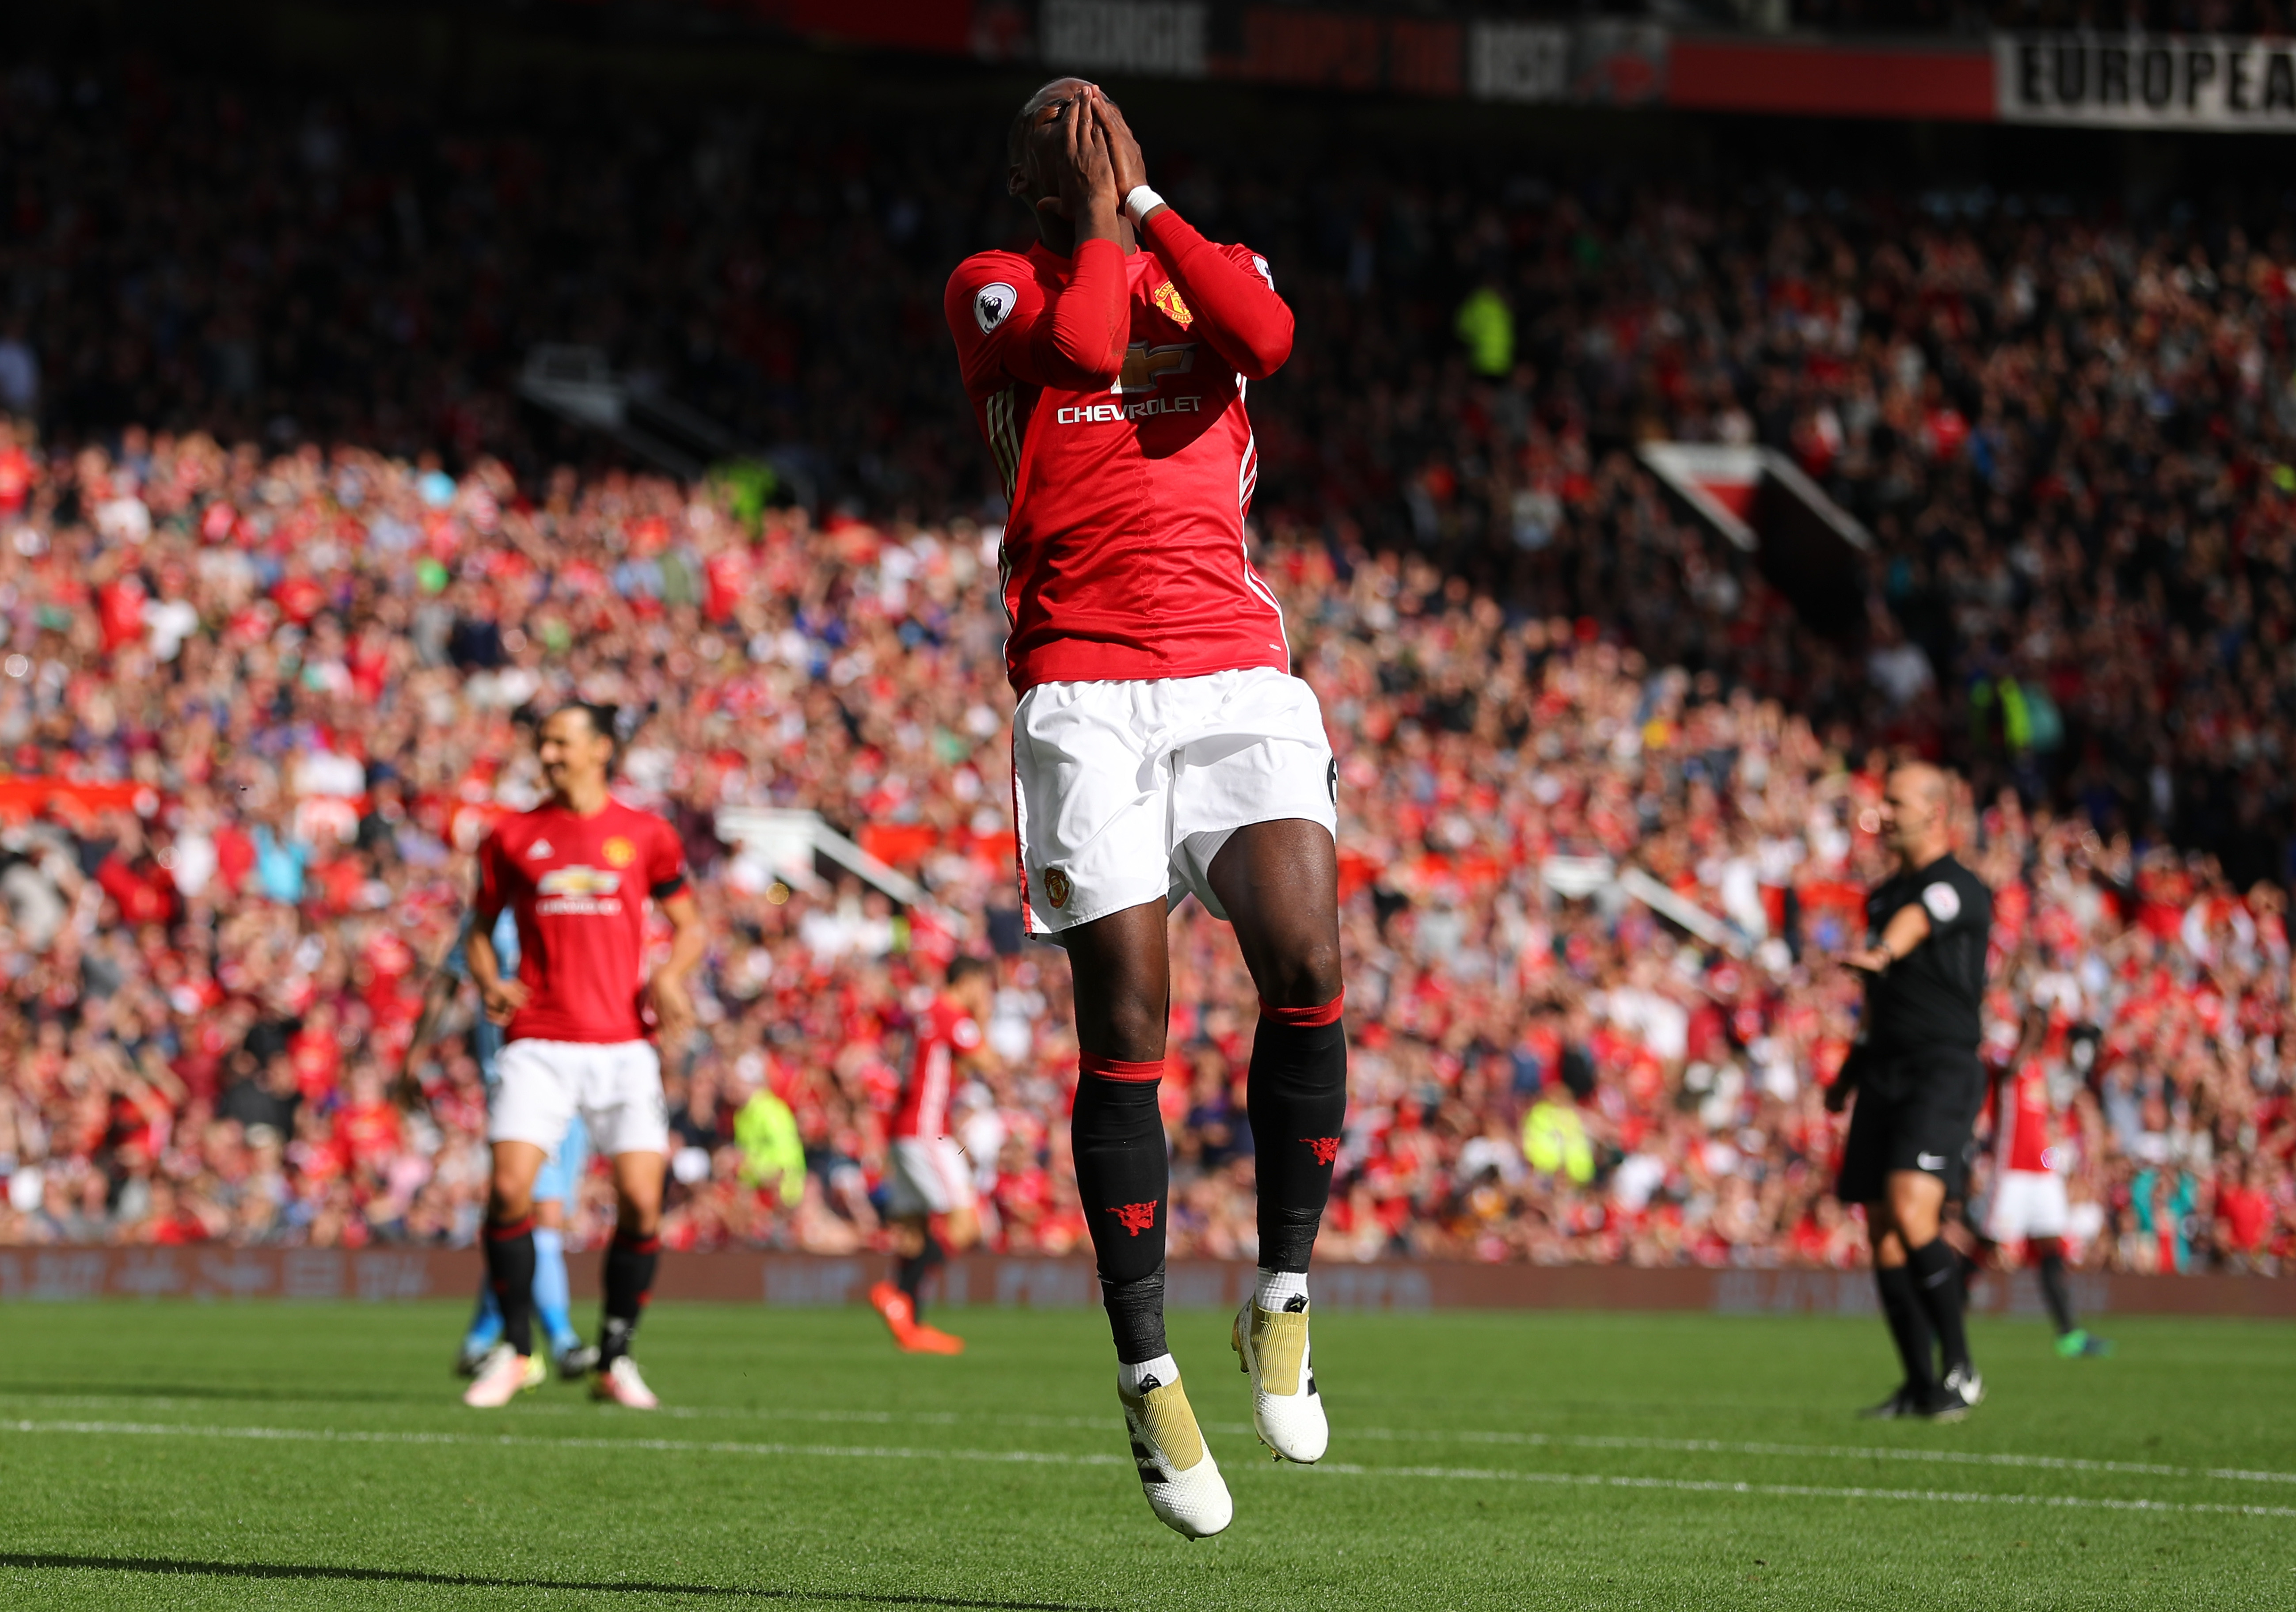 MANCHESTER, ENGLAND - OCTOBER 02:  Paul Pogba of Manchester United reacts to shooting wide of the goal during the Premier League match between Manchester United and Stoke City at Old Trafford on October 2, 2016 in Manchester, England.  (Photo by Richard Heathcote/Getty Images)